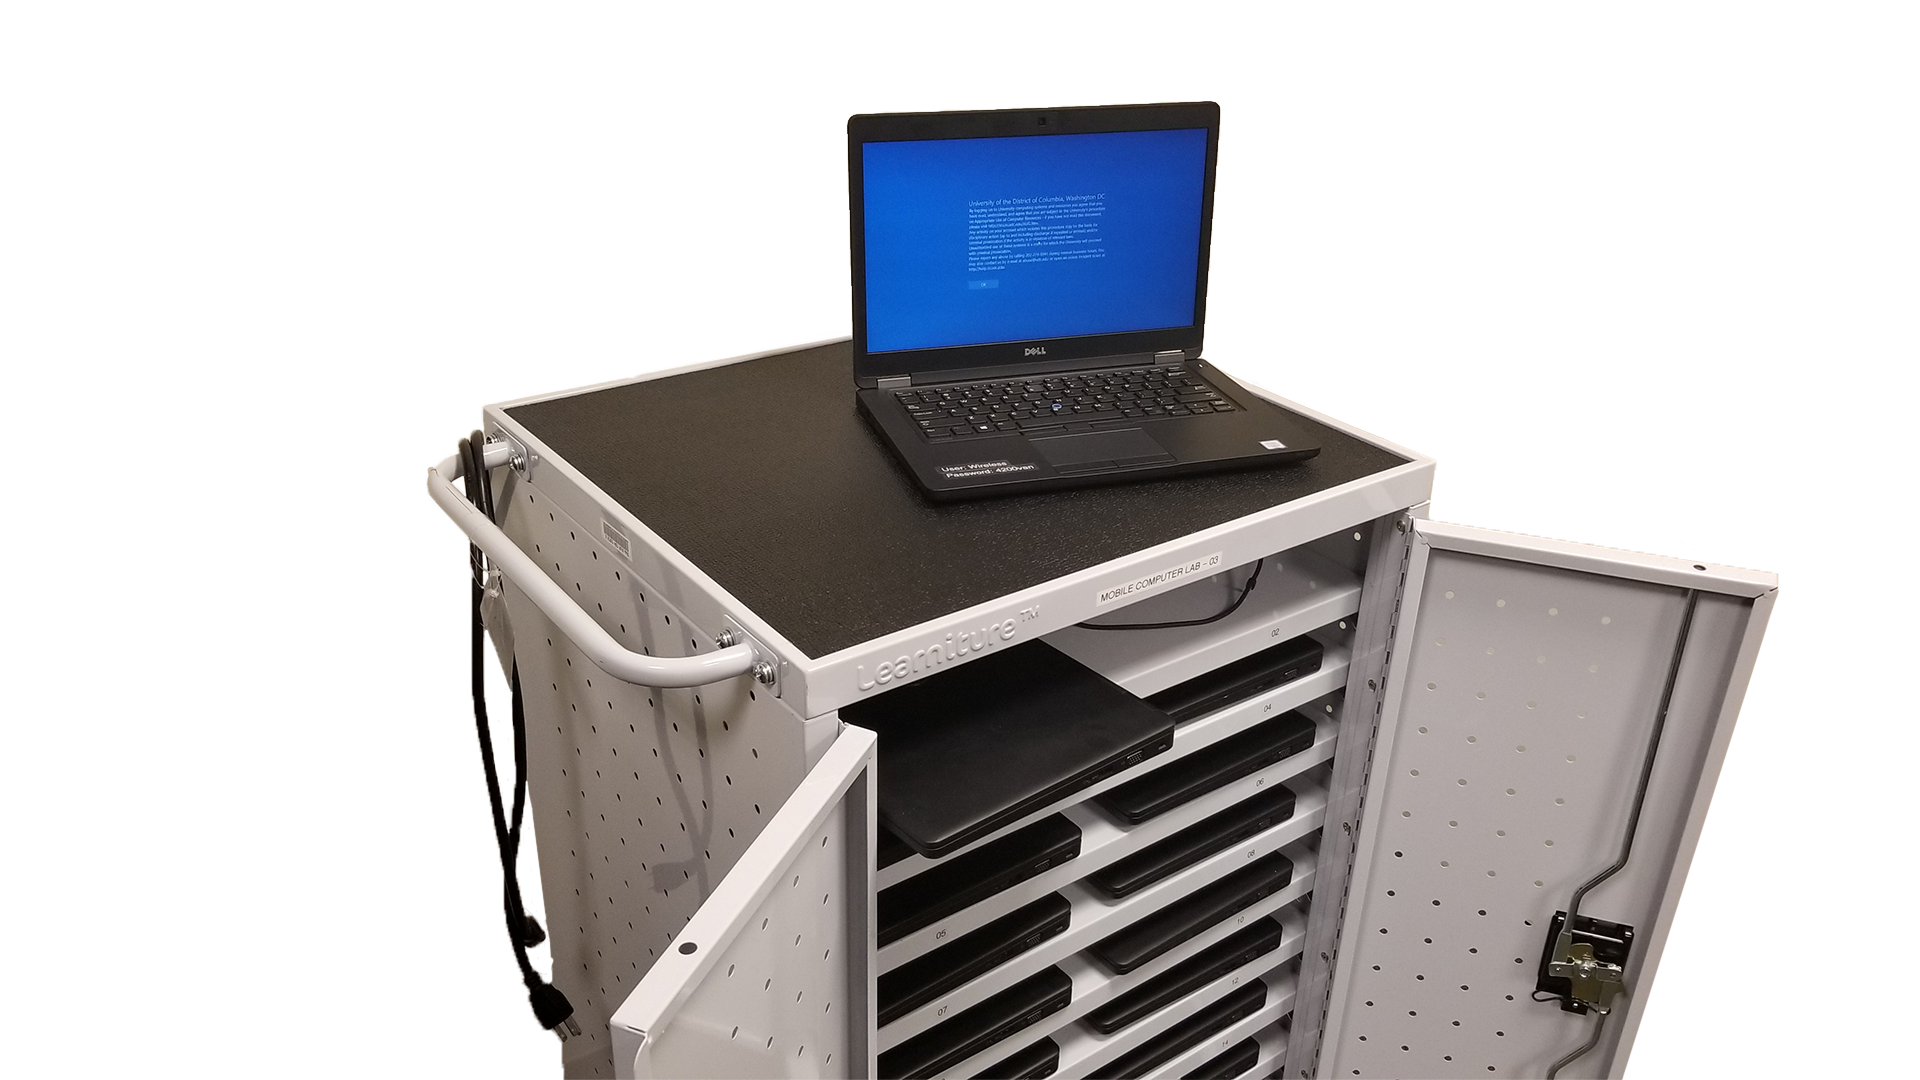 Image of an open laptop on a cart of laptops